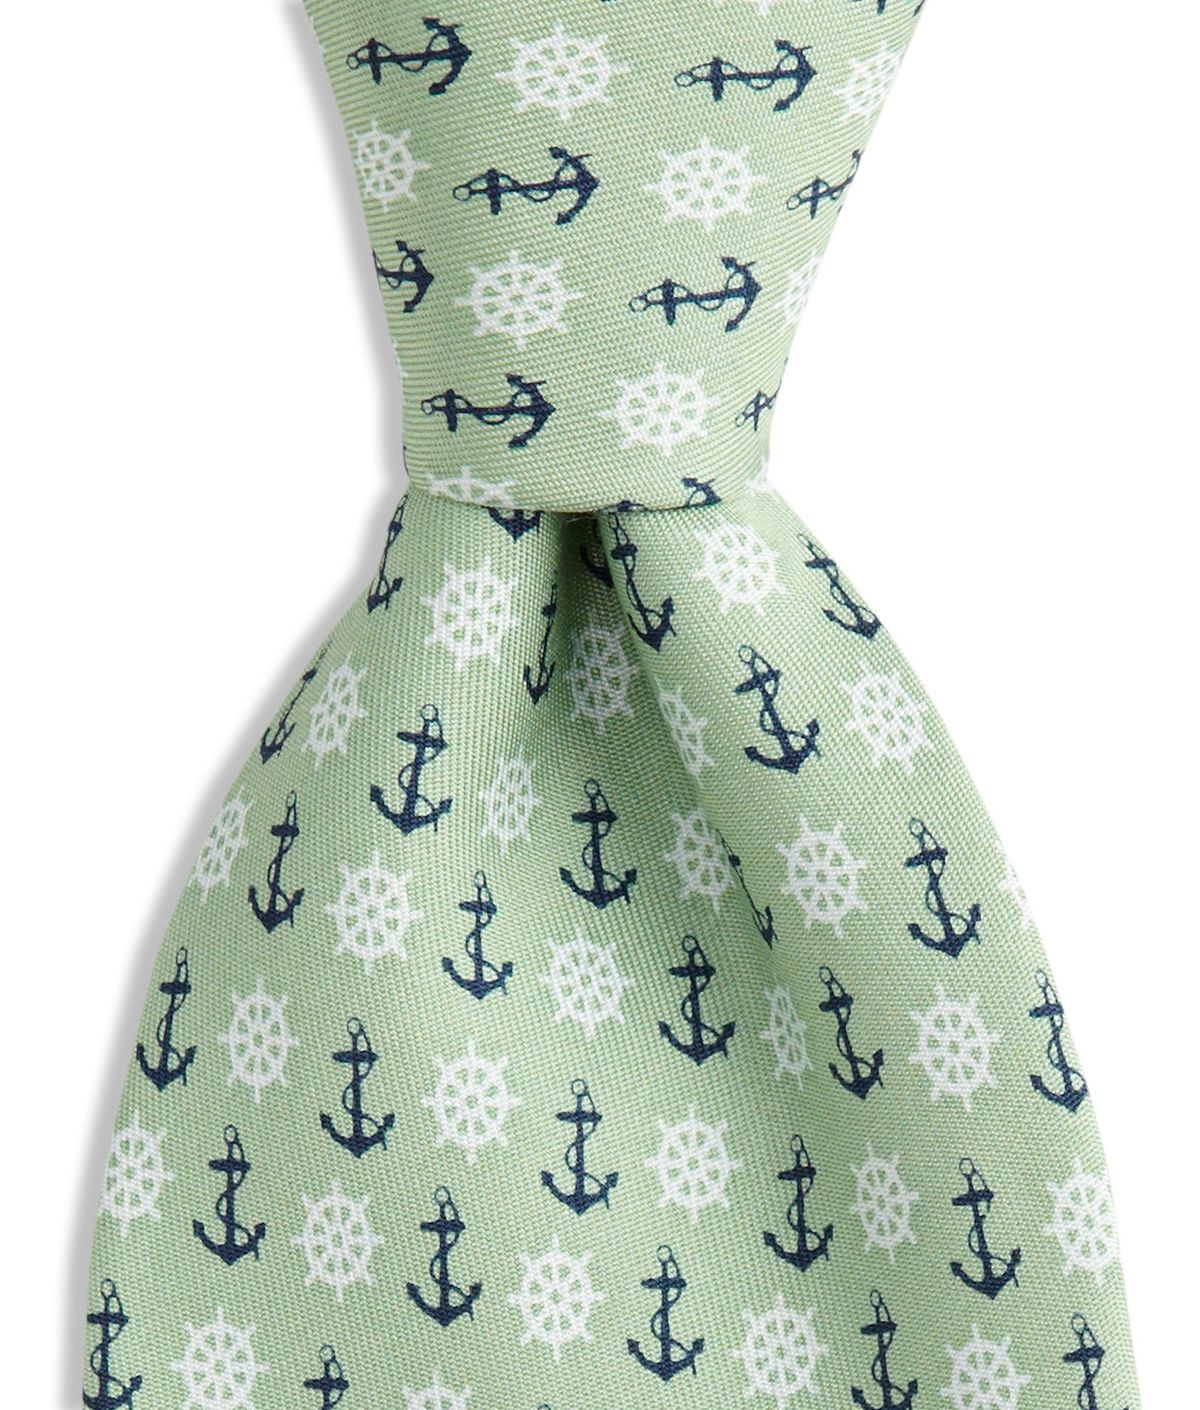 e136eb55a6c5 Vineyard Vines - Anchor & Wheel tie for hubs | My Style | Silk ties ...